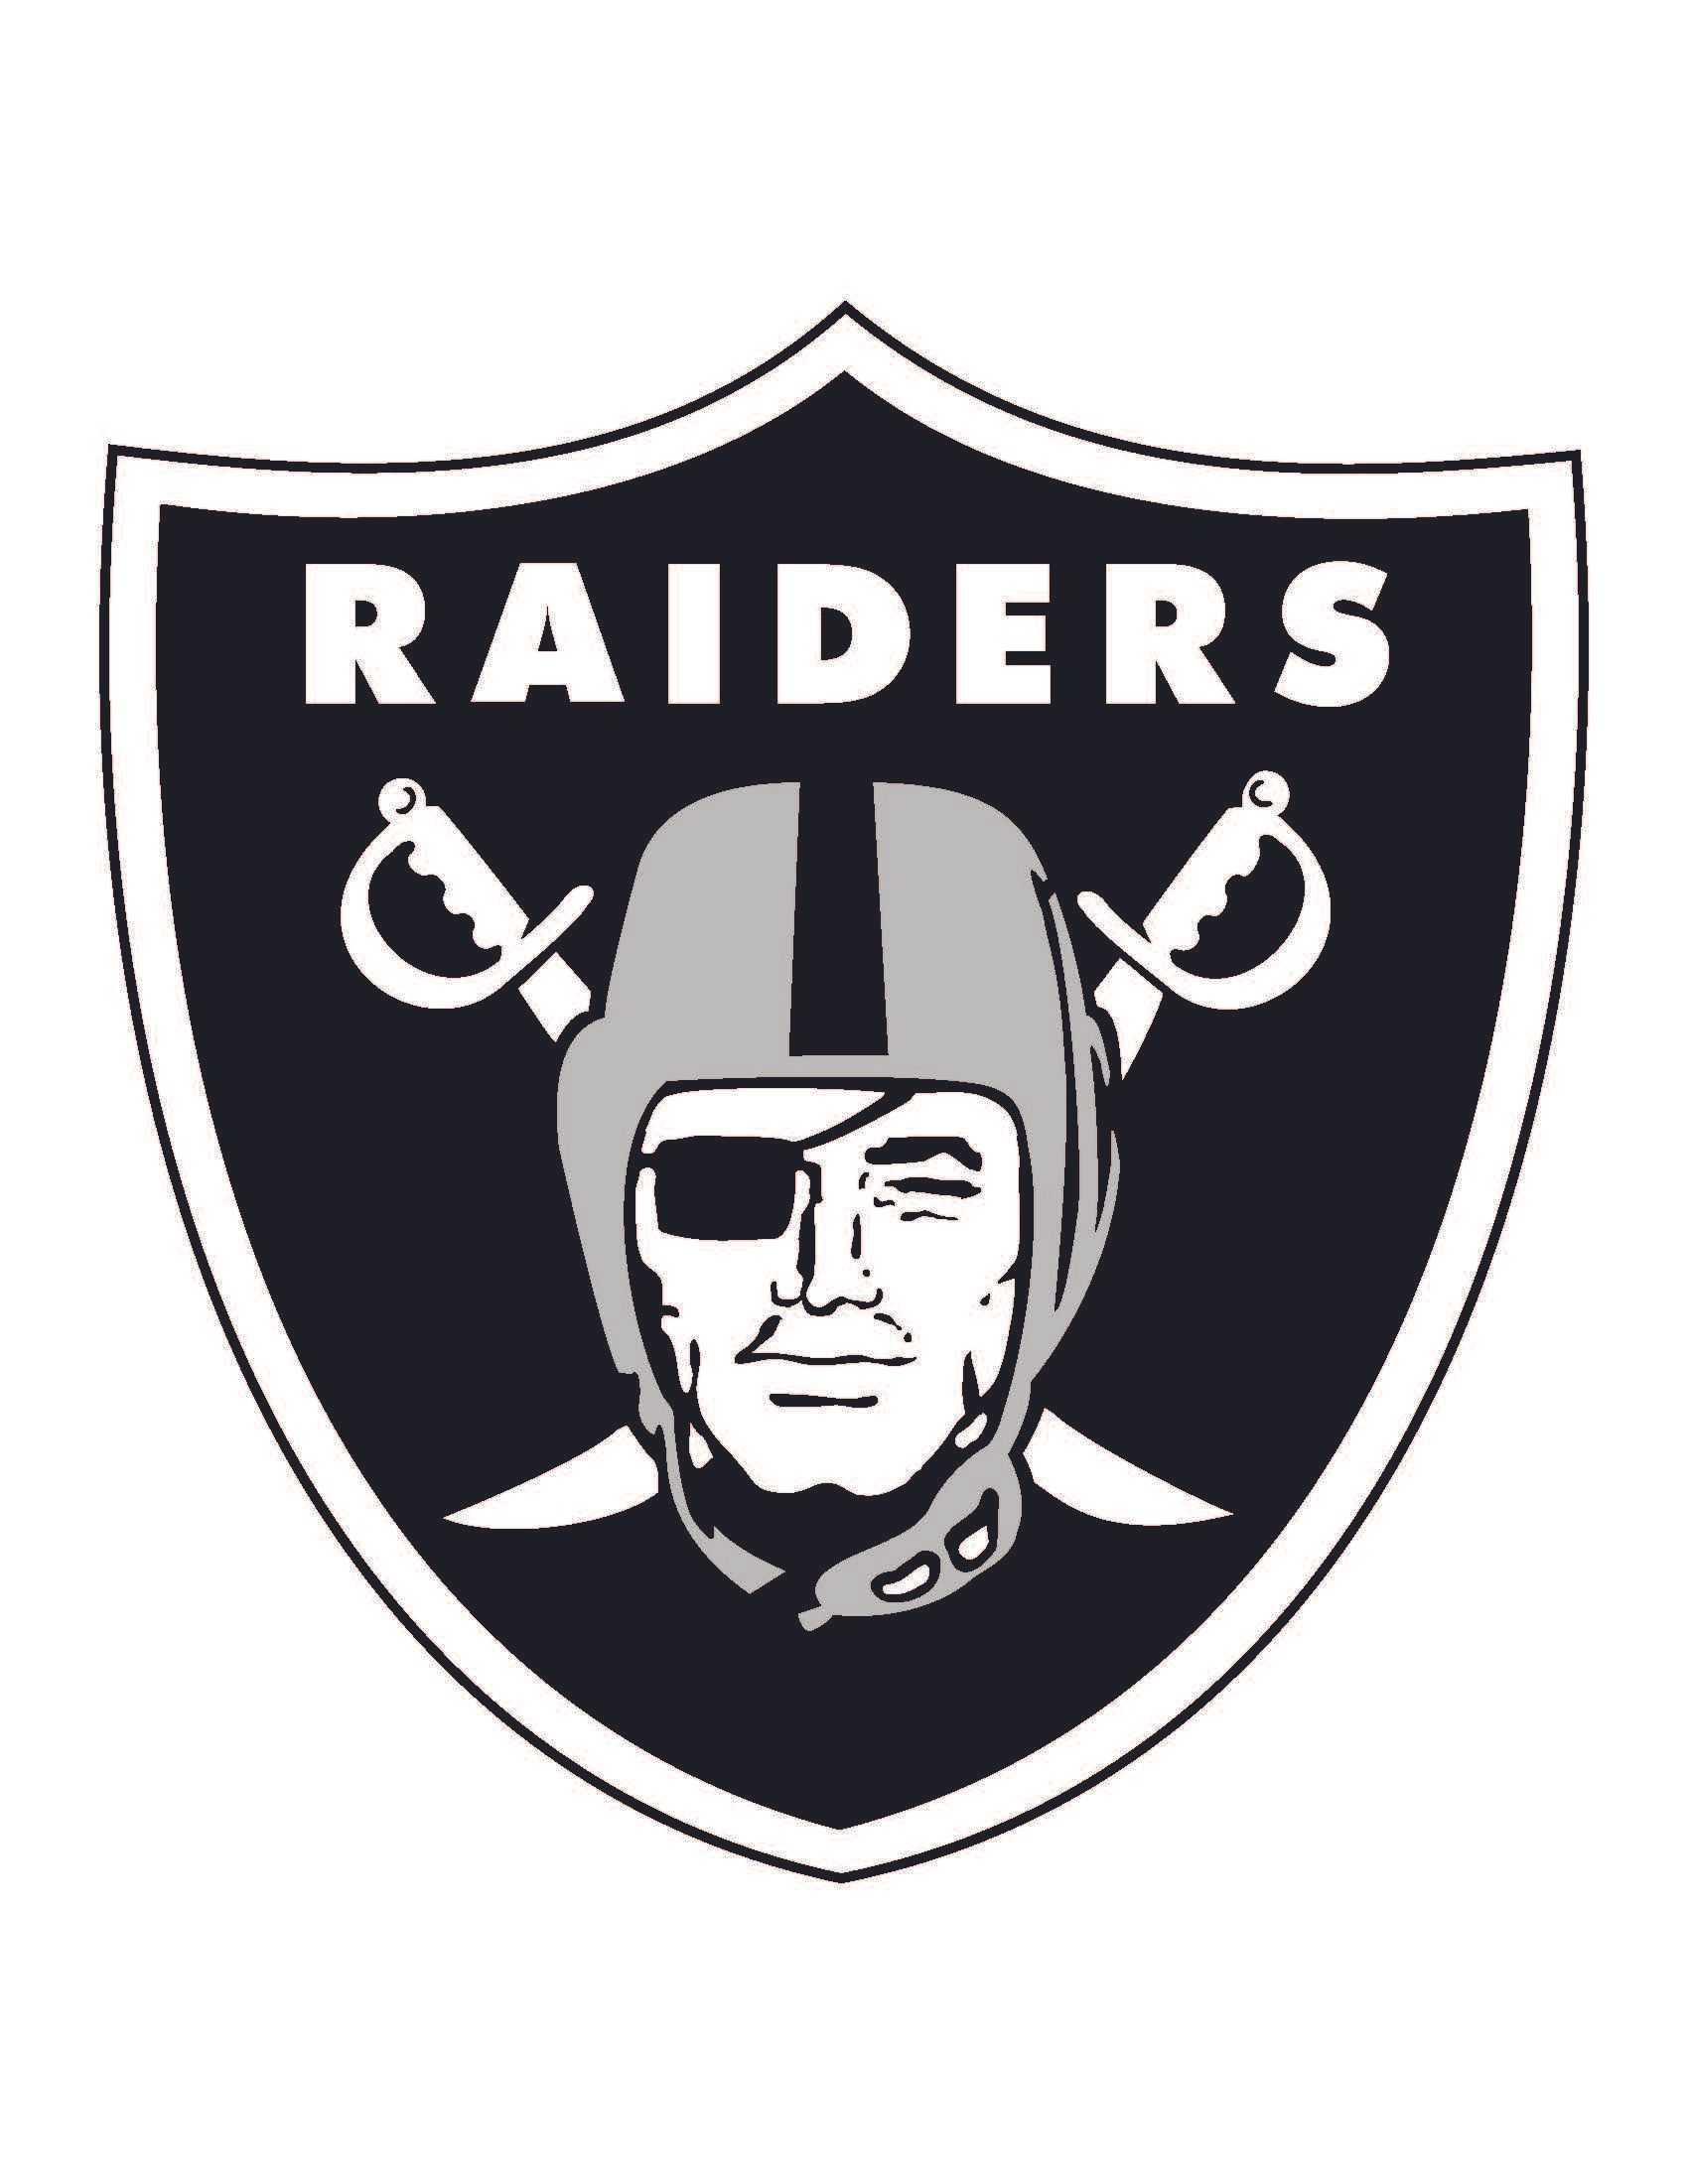 Raiders support Las Vegas community with several events